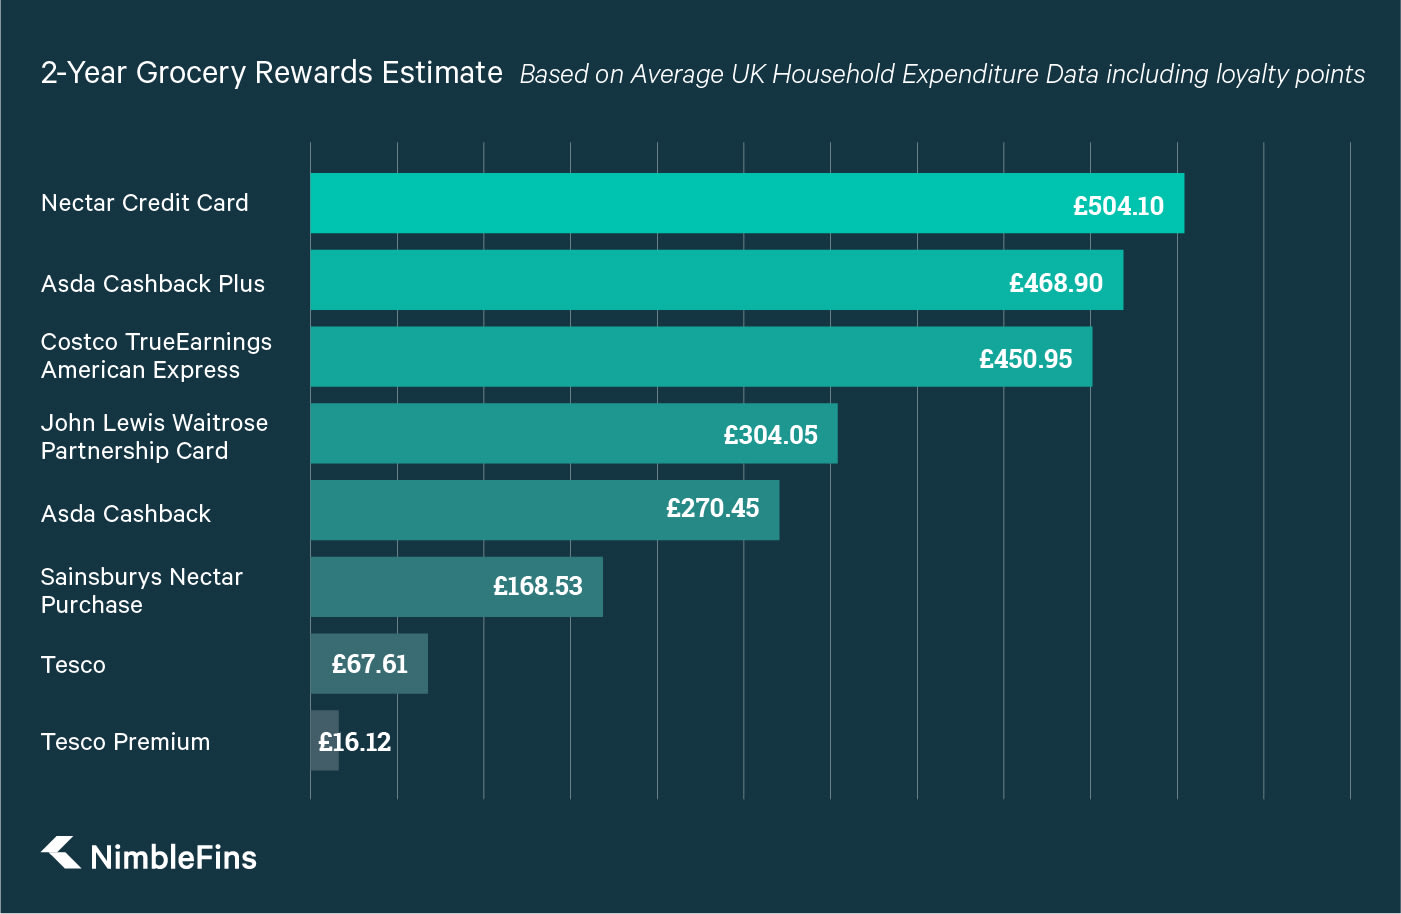 A graph comparing the estimated rewards from the best UK grocery rewards credit cards